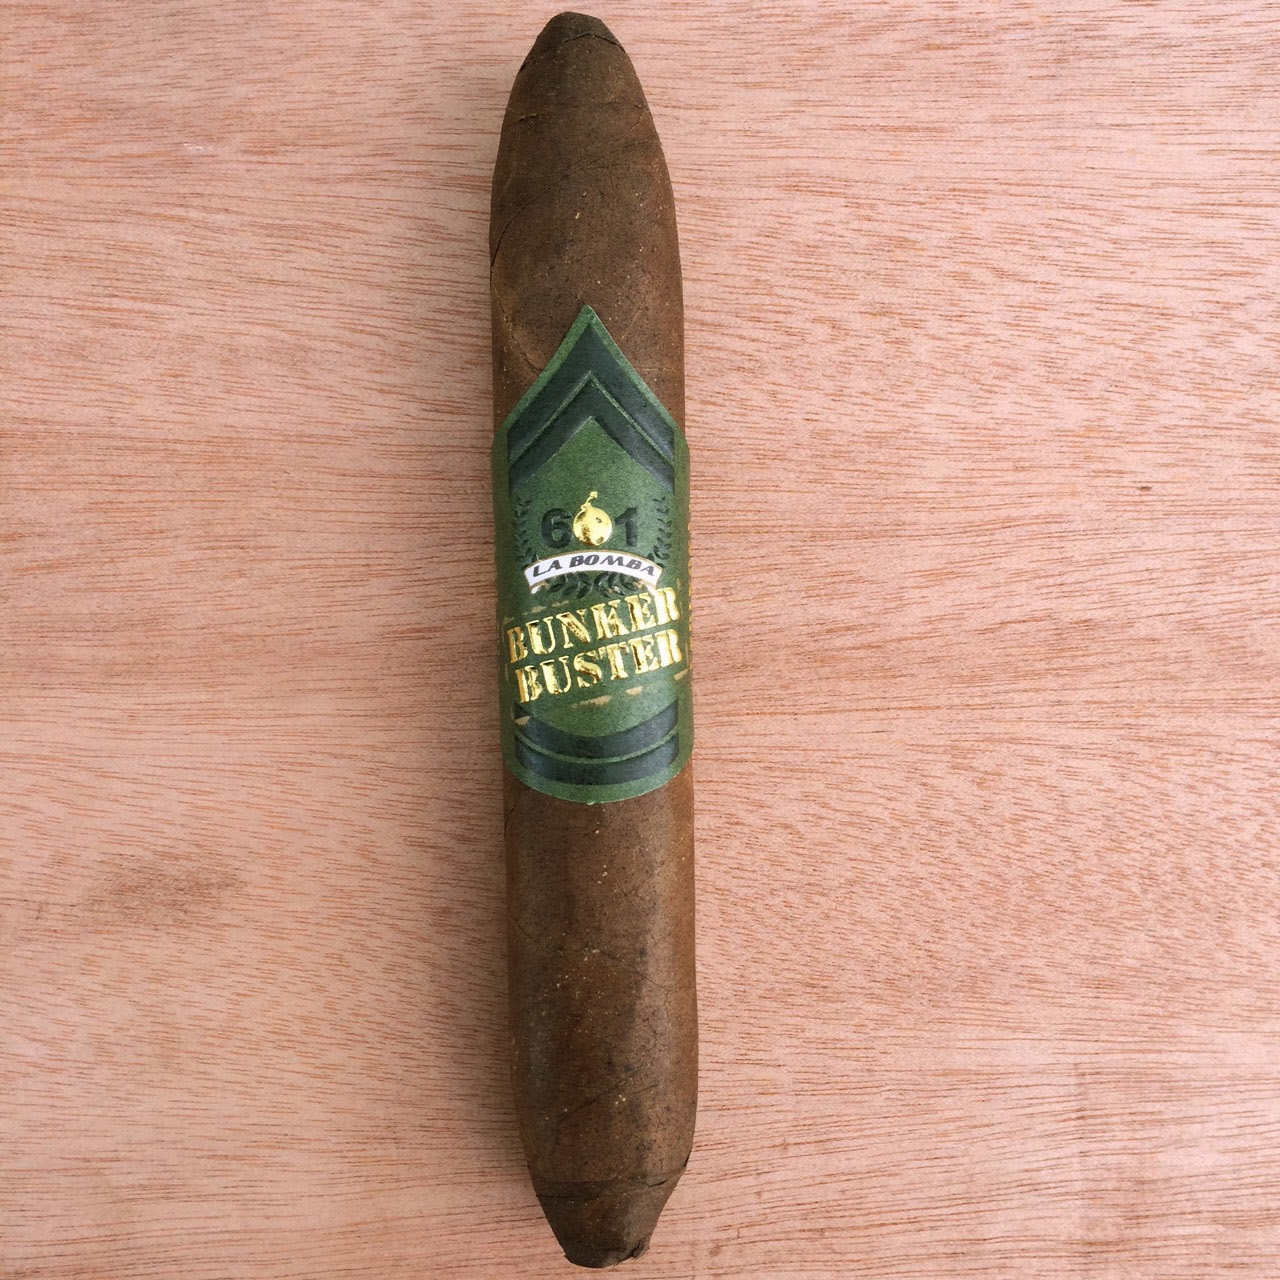 Cigar News: Smoke Inn MicroBlend 601 La Bomba Bunker Buster to Launch June 6th (Cigar Preview)